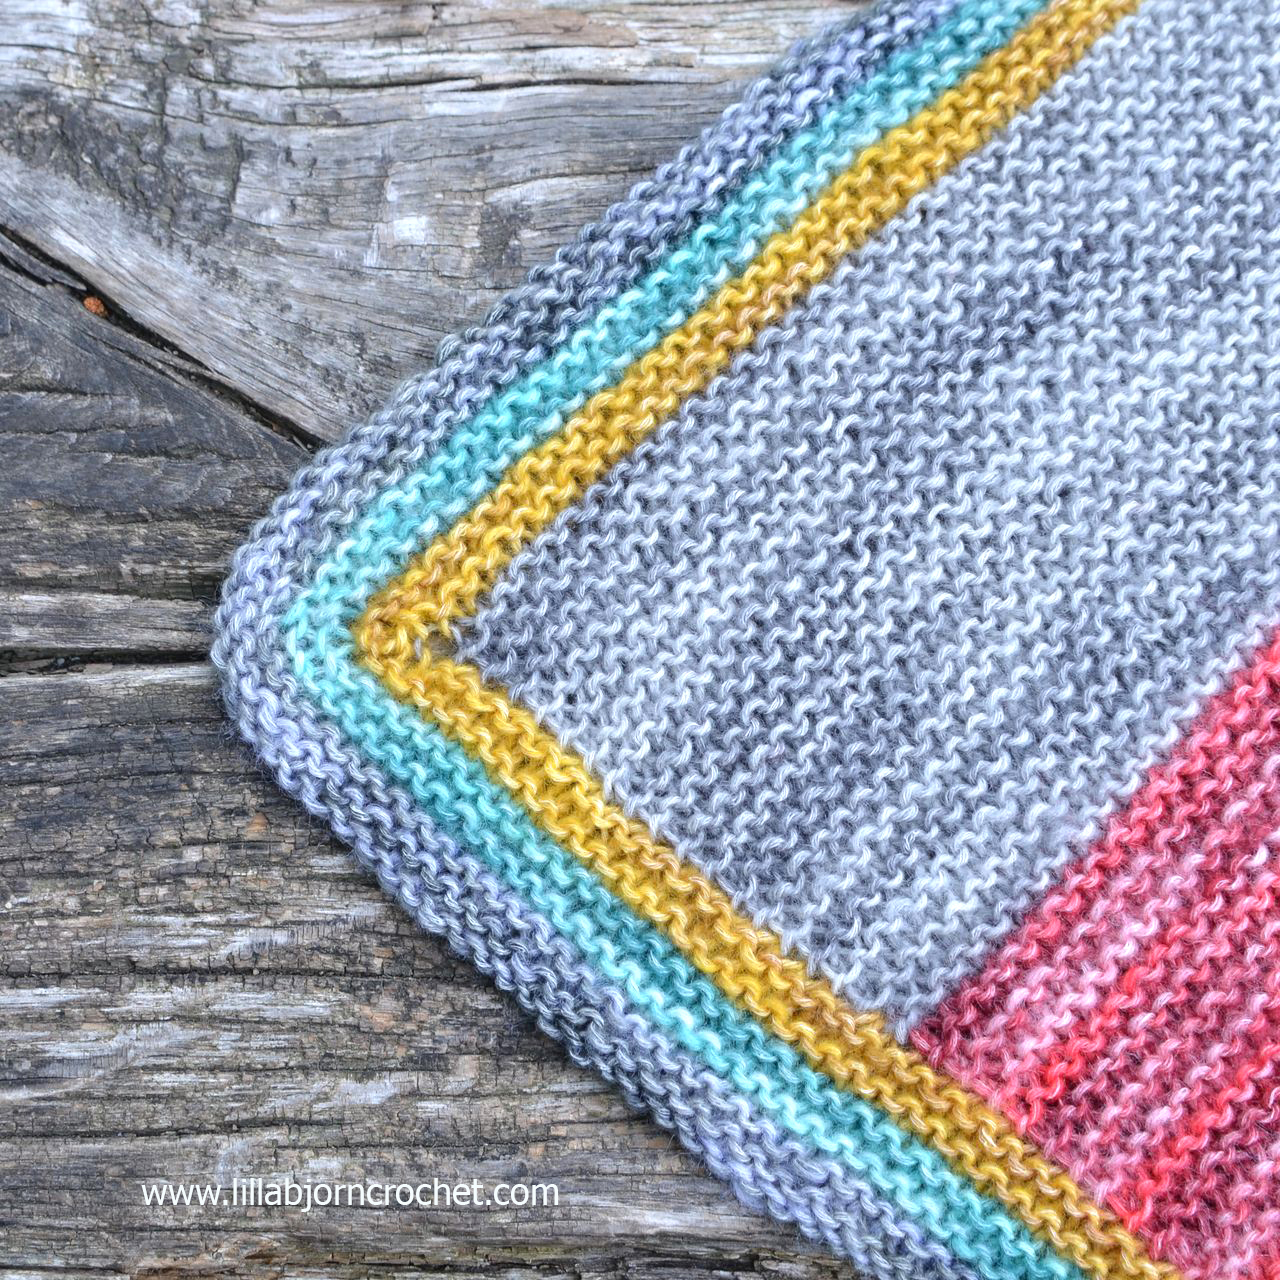 Spirit Baby Blanket in progress... | LillaBjörn\'s Crochet World